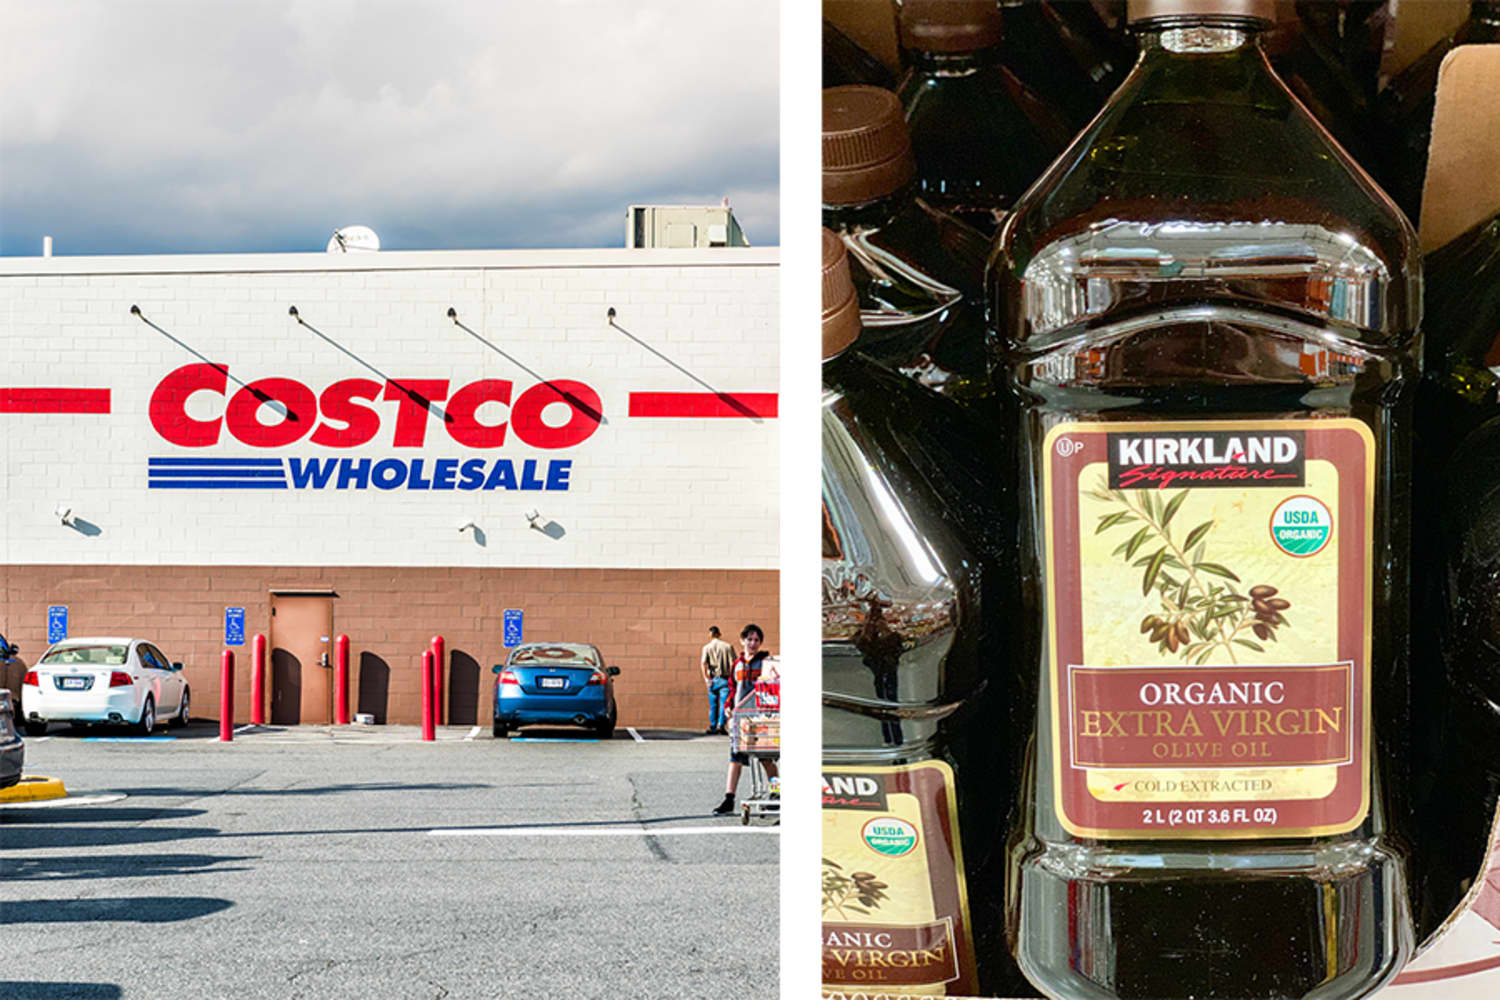 ALERT: Many of Costco's Kirkland Signature Products Are Available on Amazon